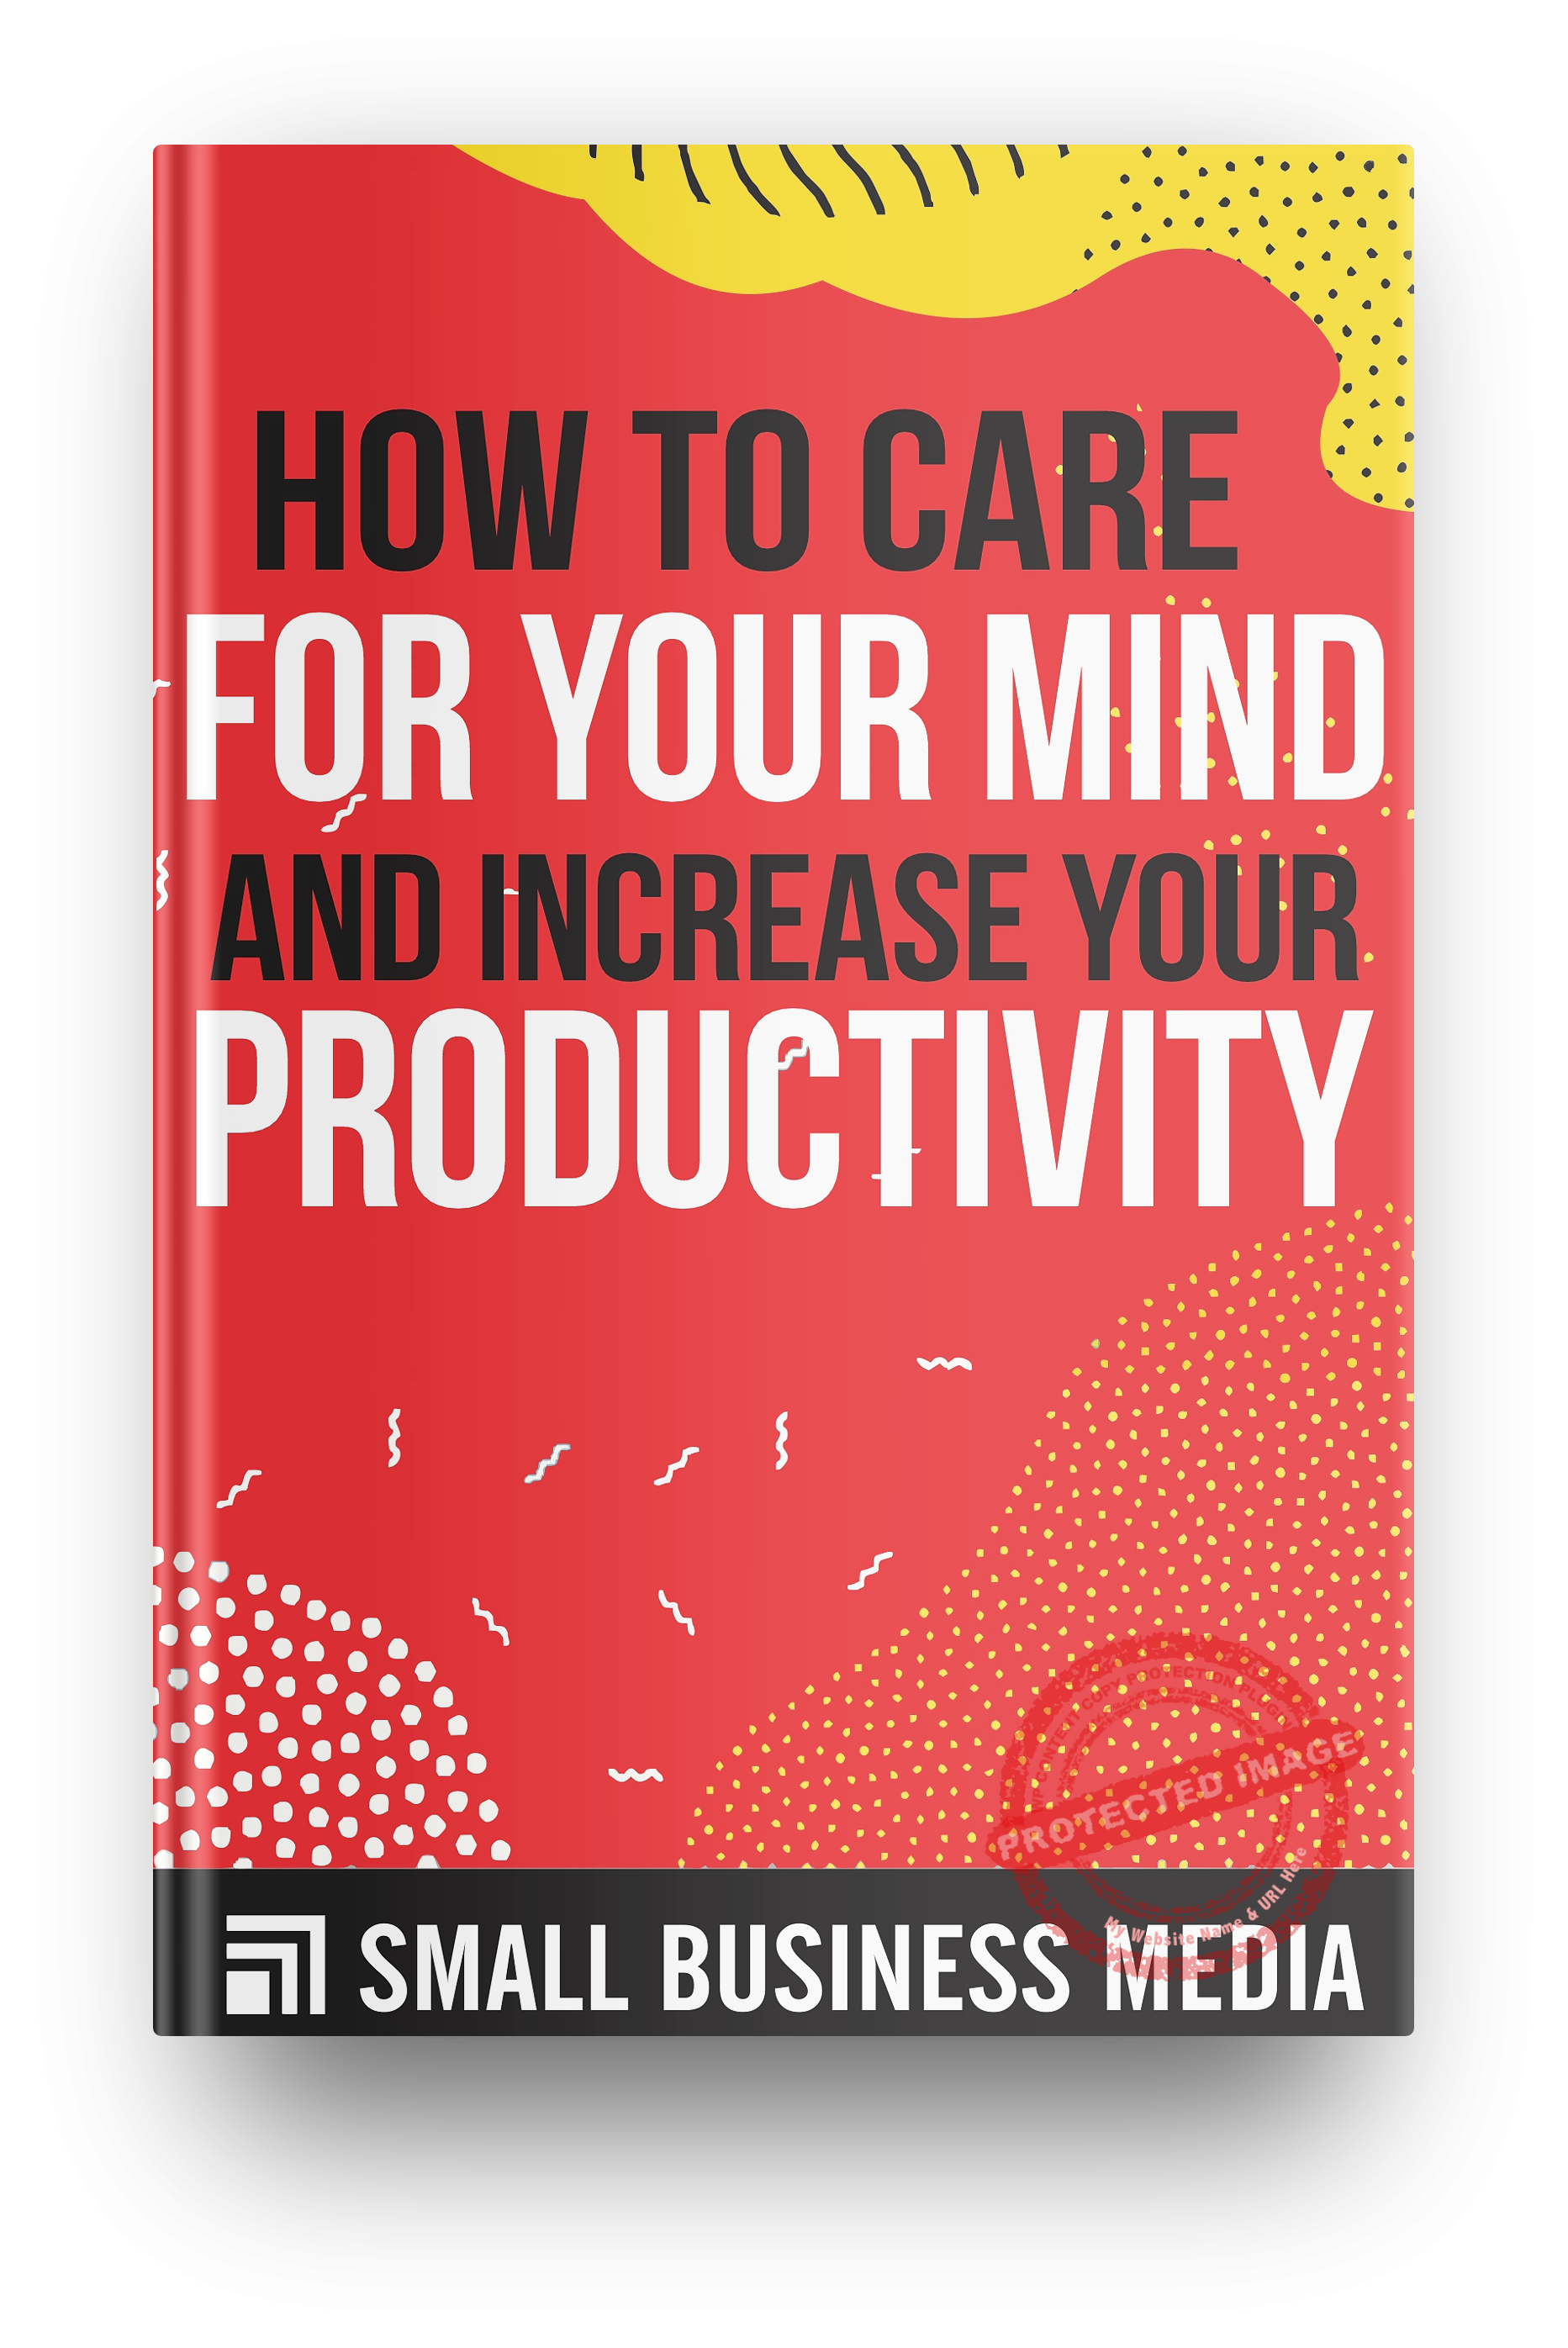 How to care for your mind and increase your productivity